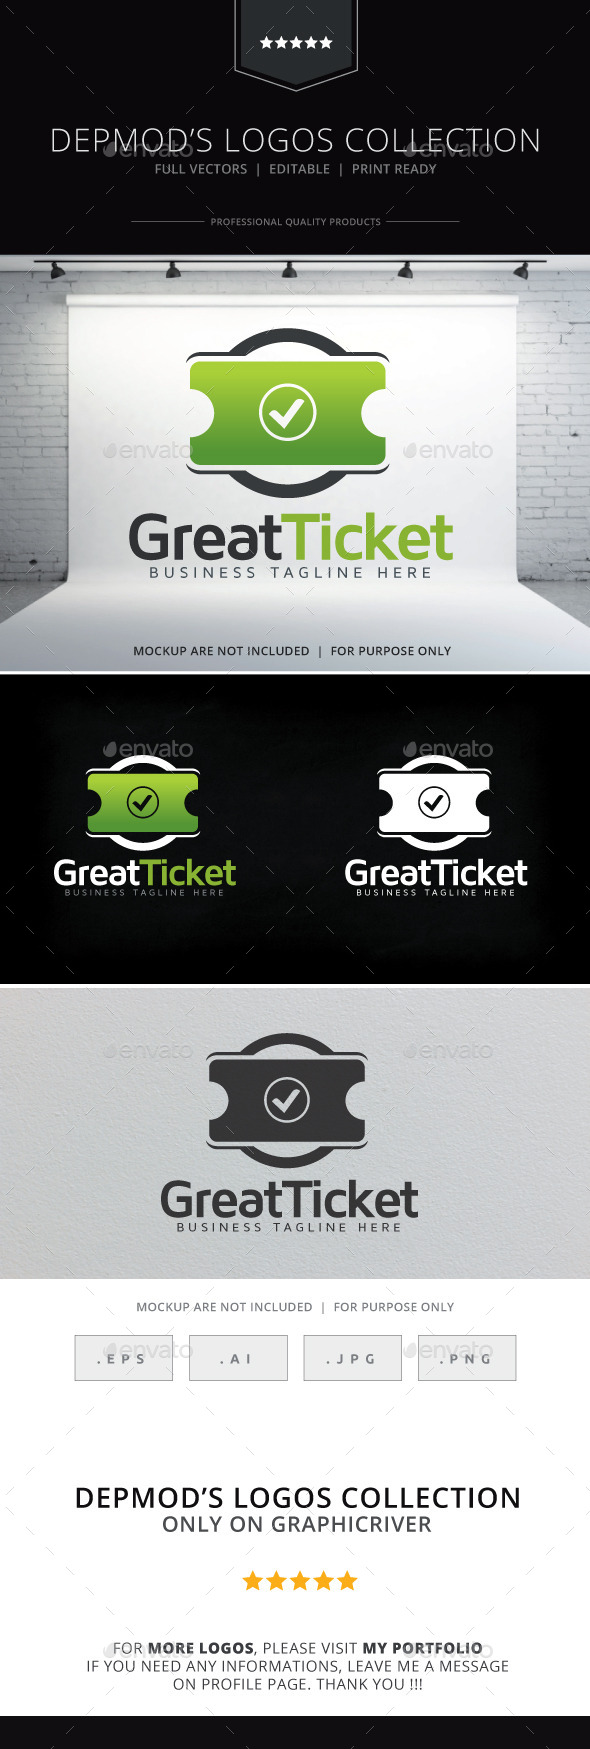 GraphicRiver Great Ticket Logo 9845697